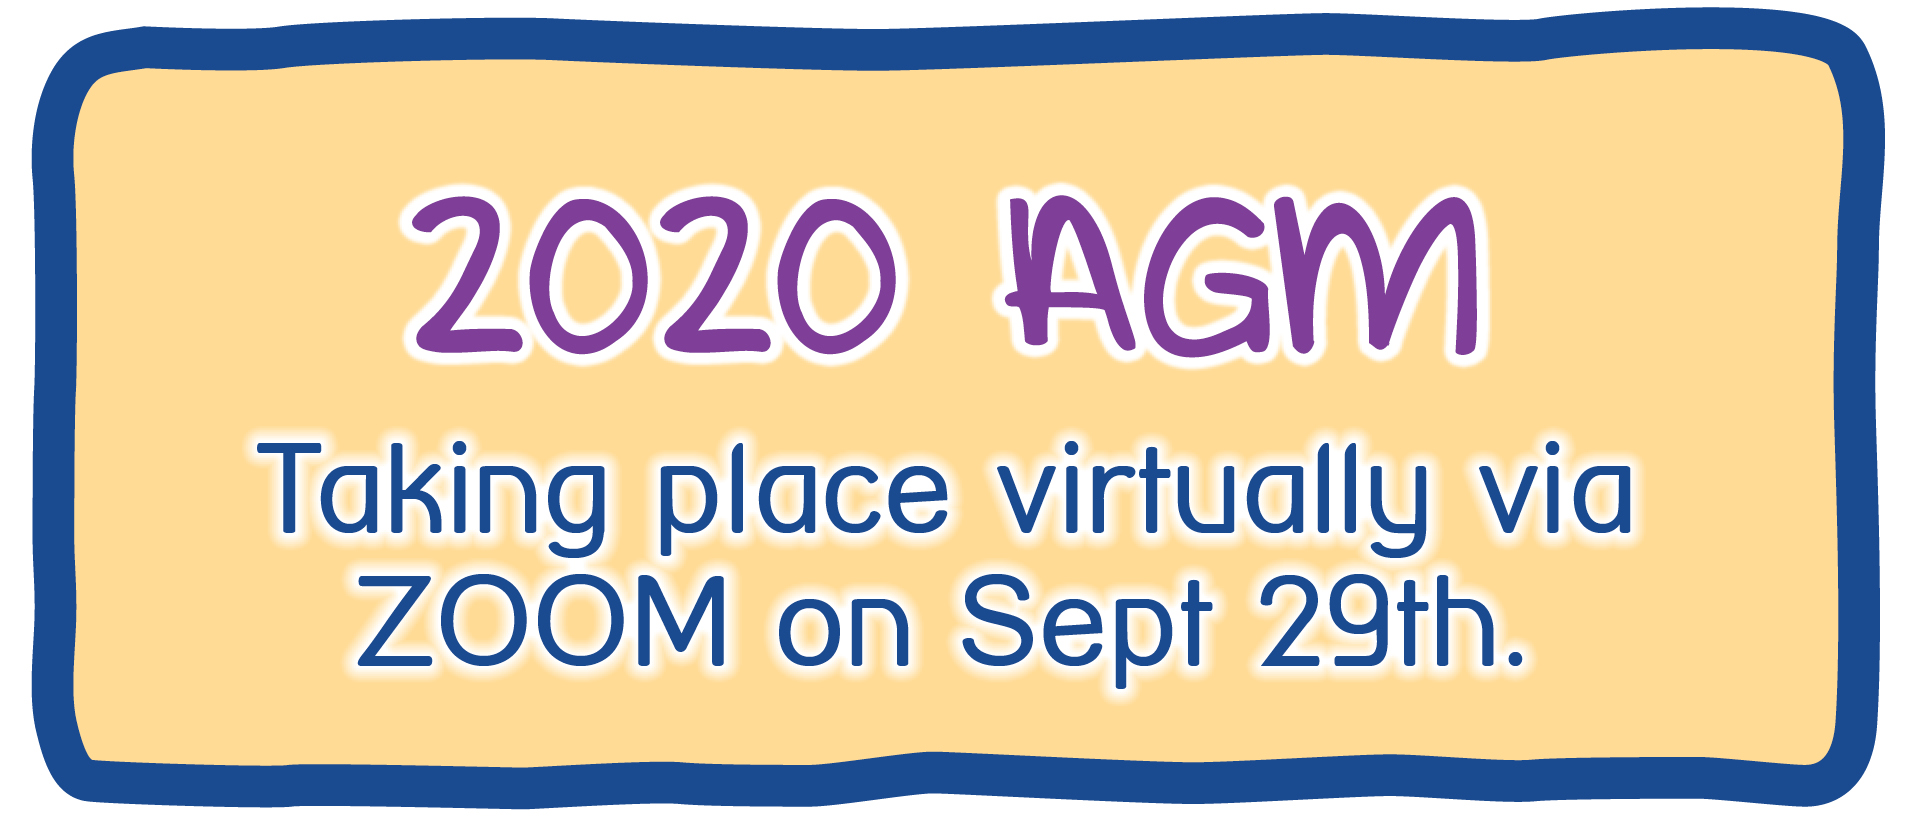 2020 AGM - Taking place virtually via ZOOM on Sept 29th.